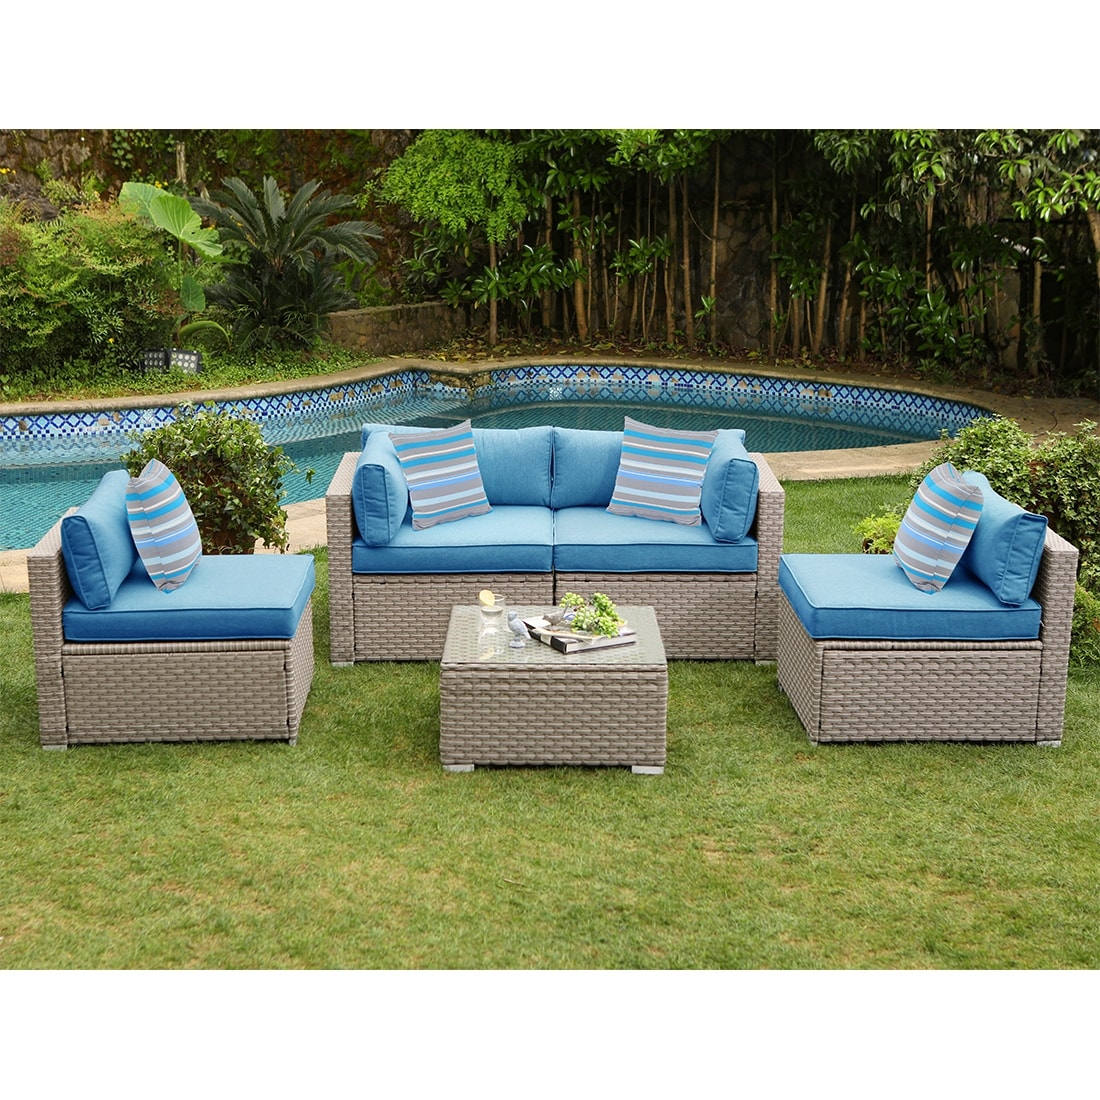 Cosiest 5 Piece Outdoor Furniture Set Wicker Sectional Sofa With Cushions Glass Coffee Table Overstock 31483291 Blue